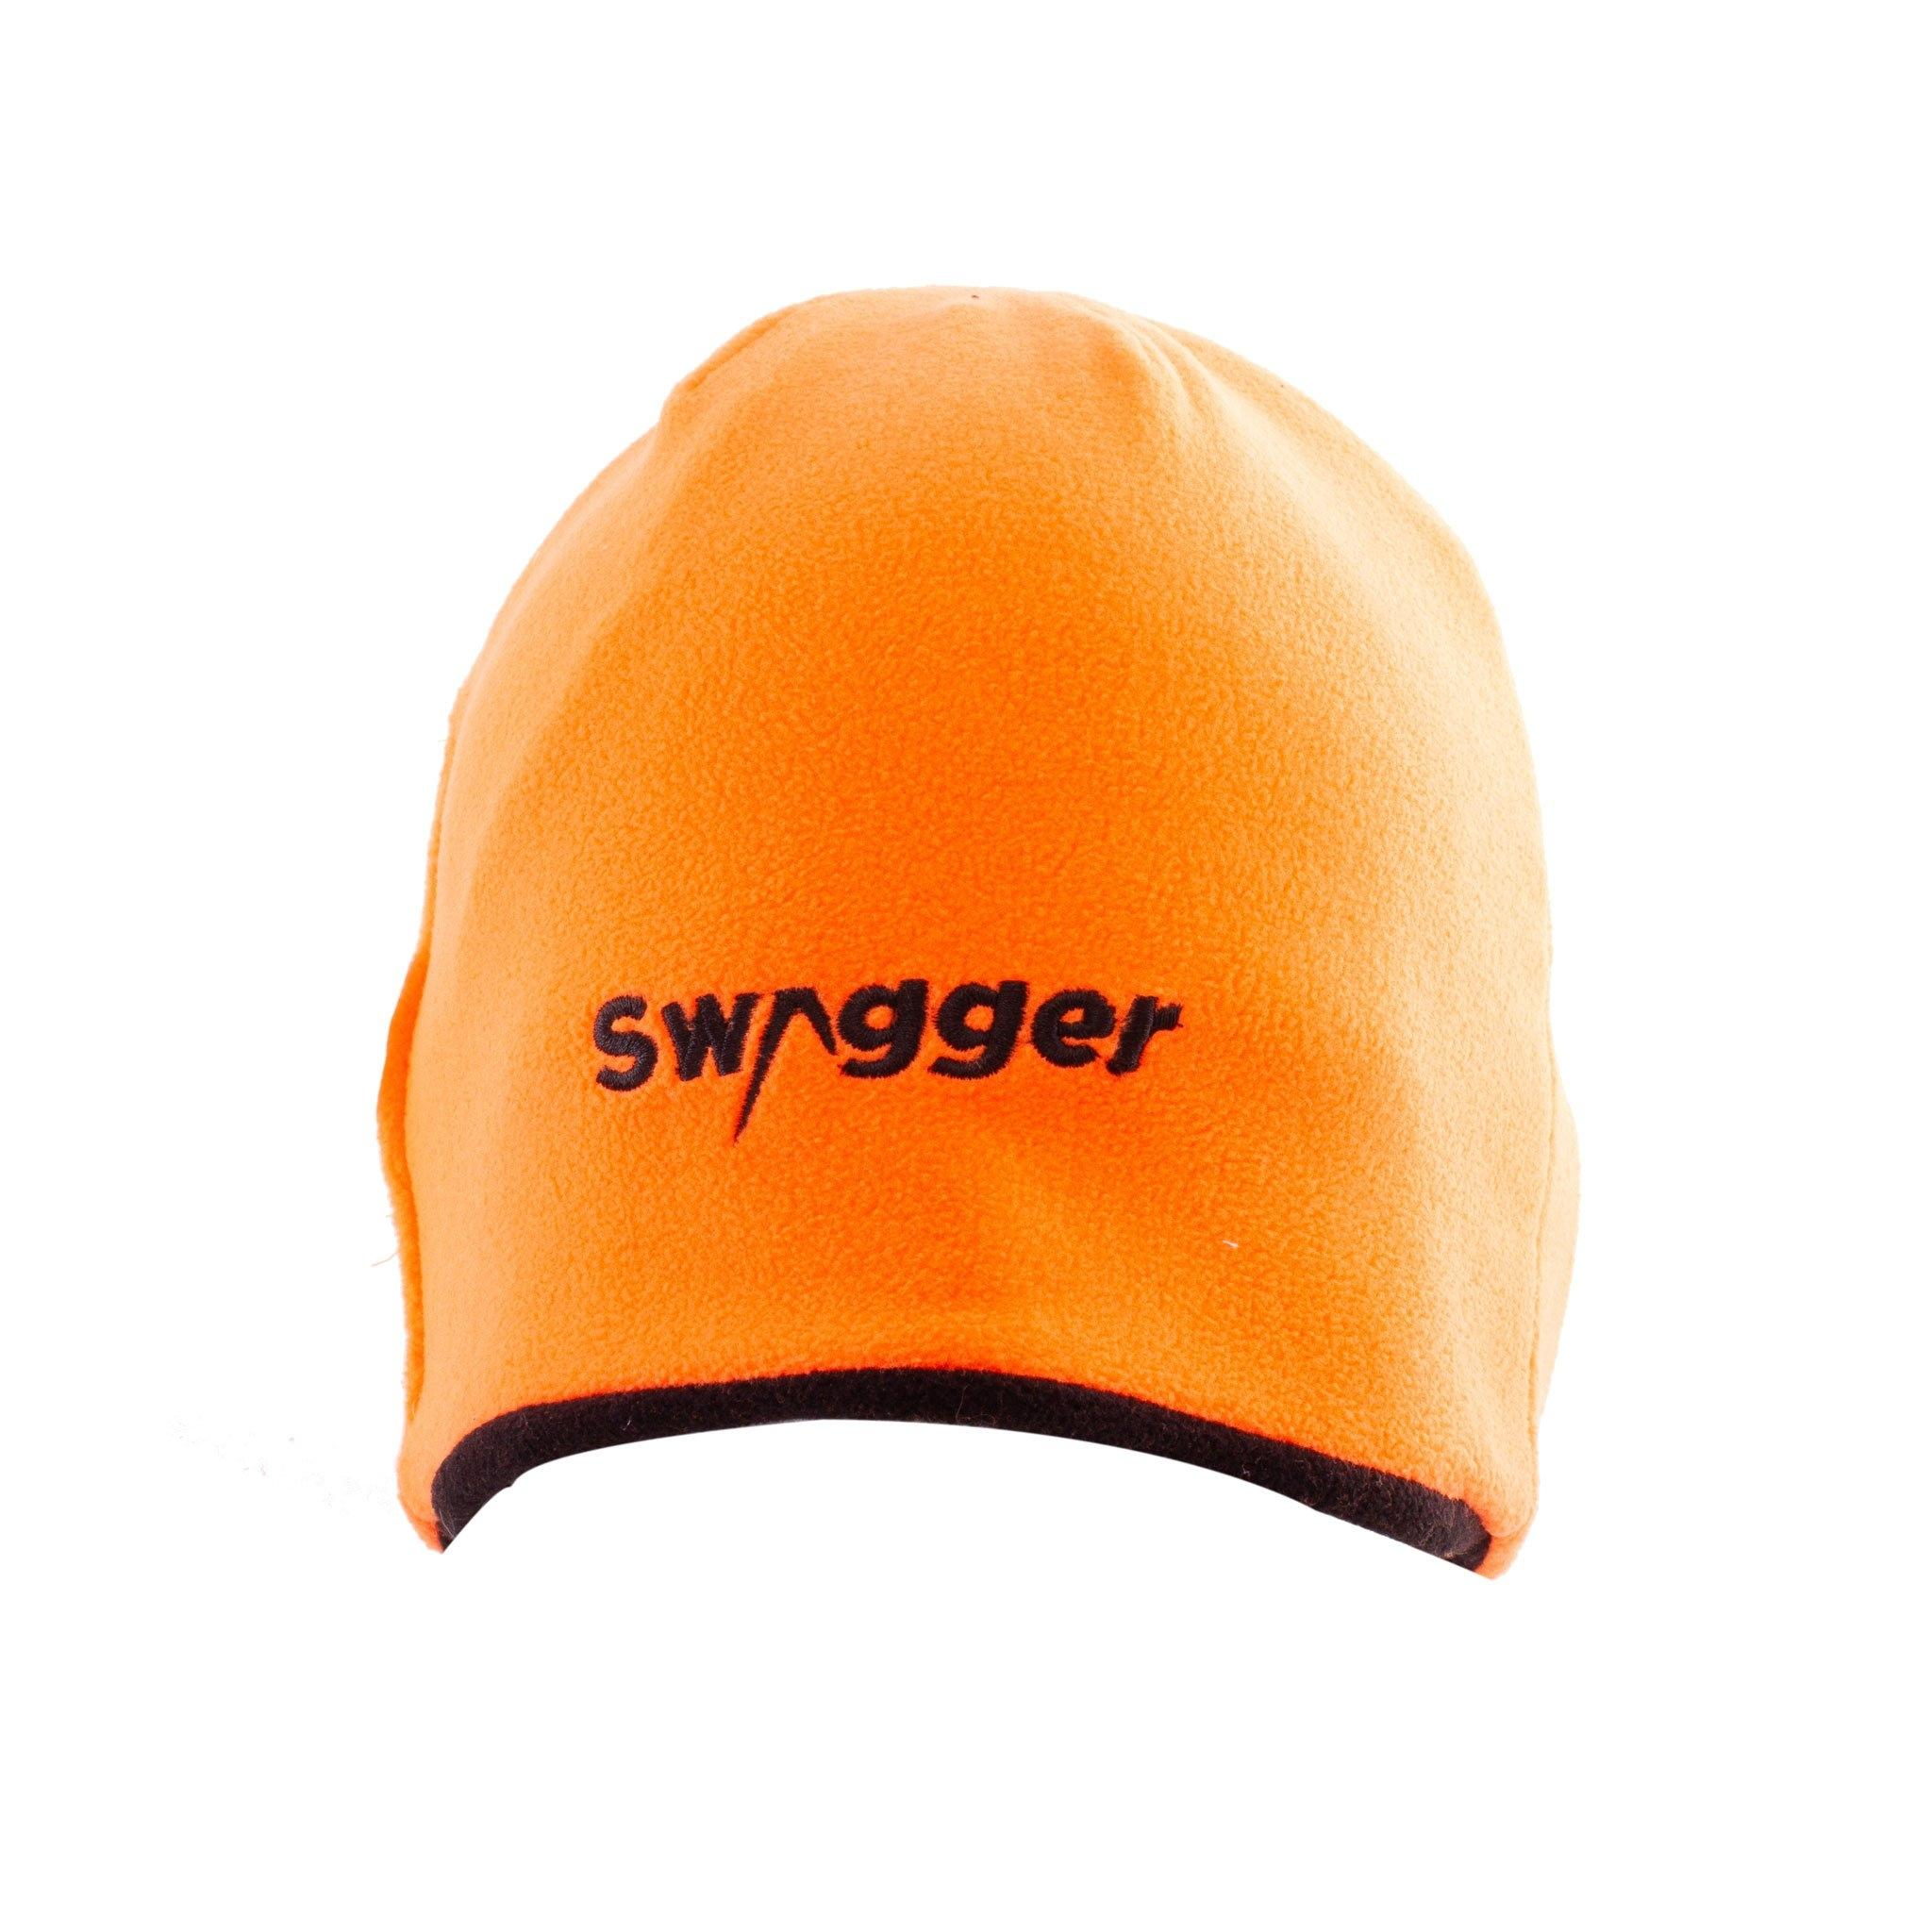 Swagger Reversible Beanie